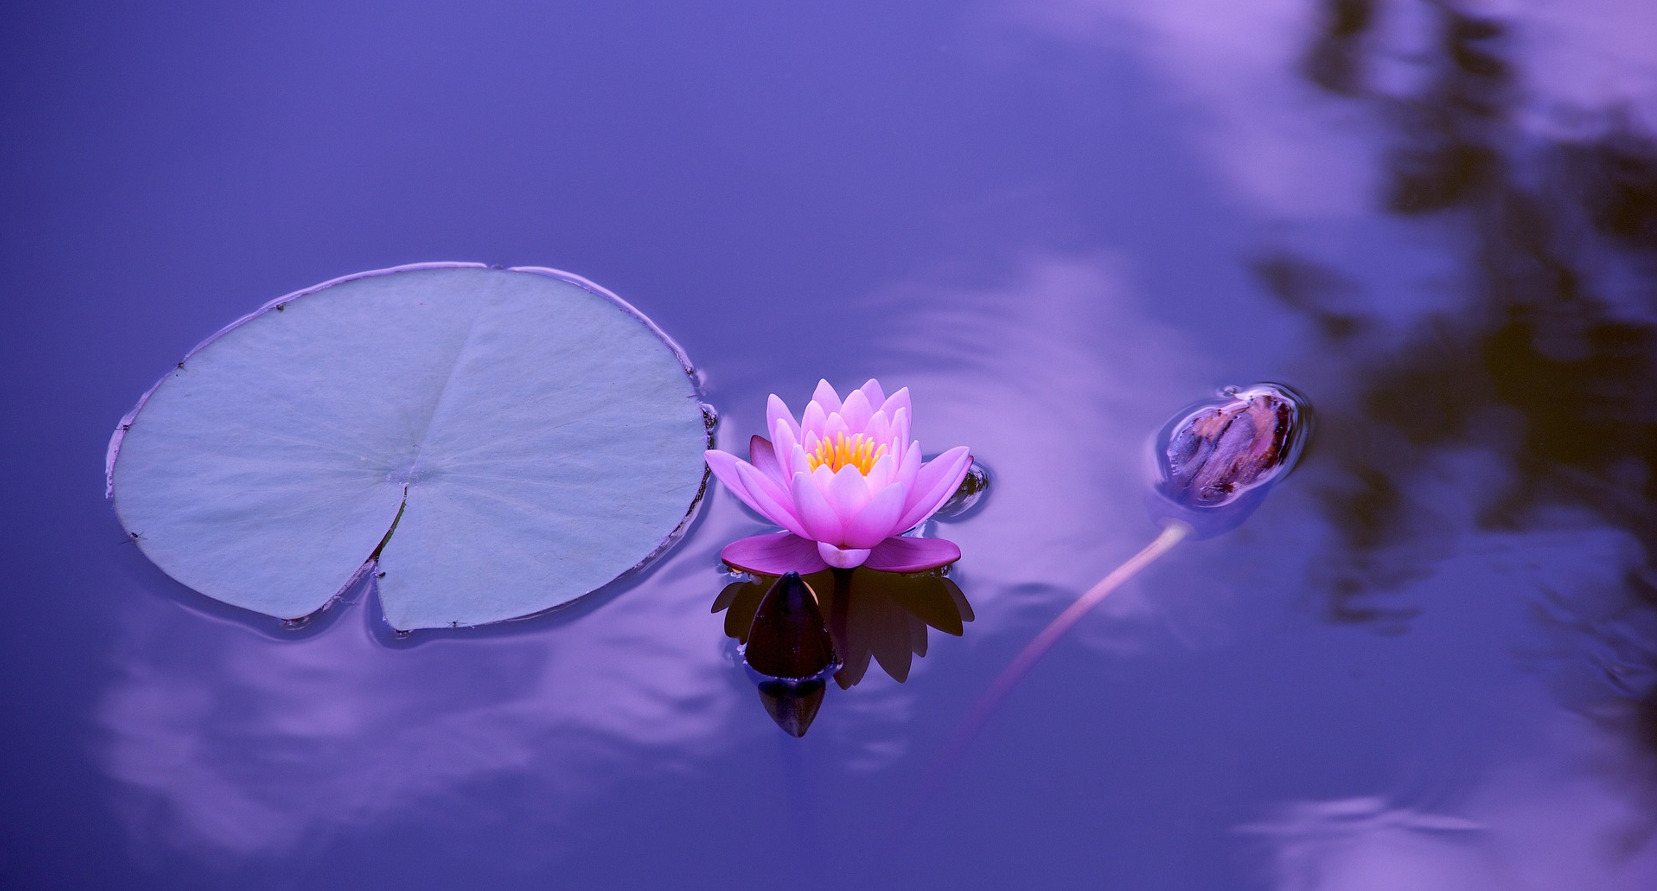 A lotus flower Gary Markwick Hypnotherapy, Hypno Healing, Past Life Regression and The Law of Attraction Workshops